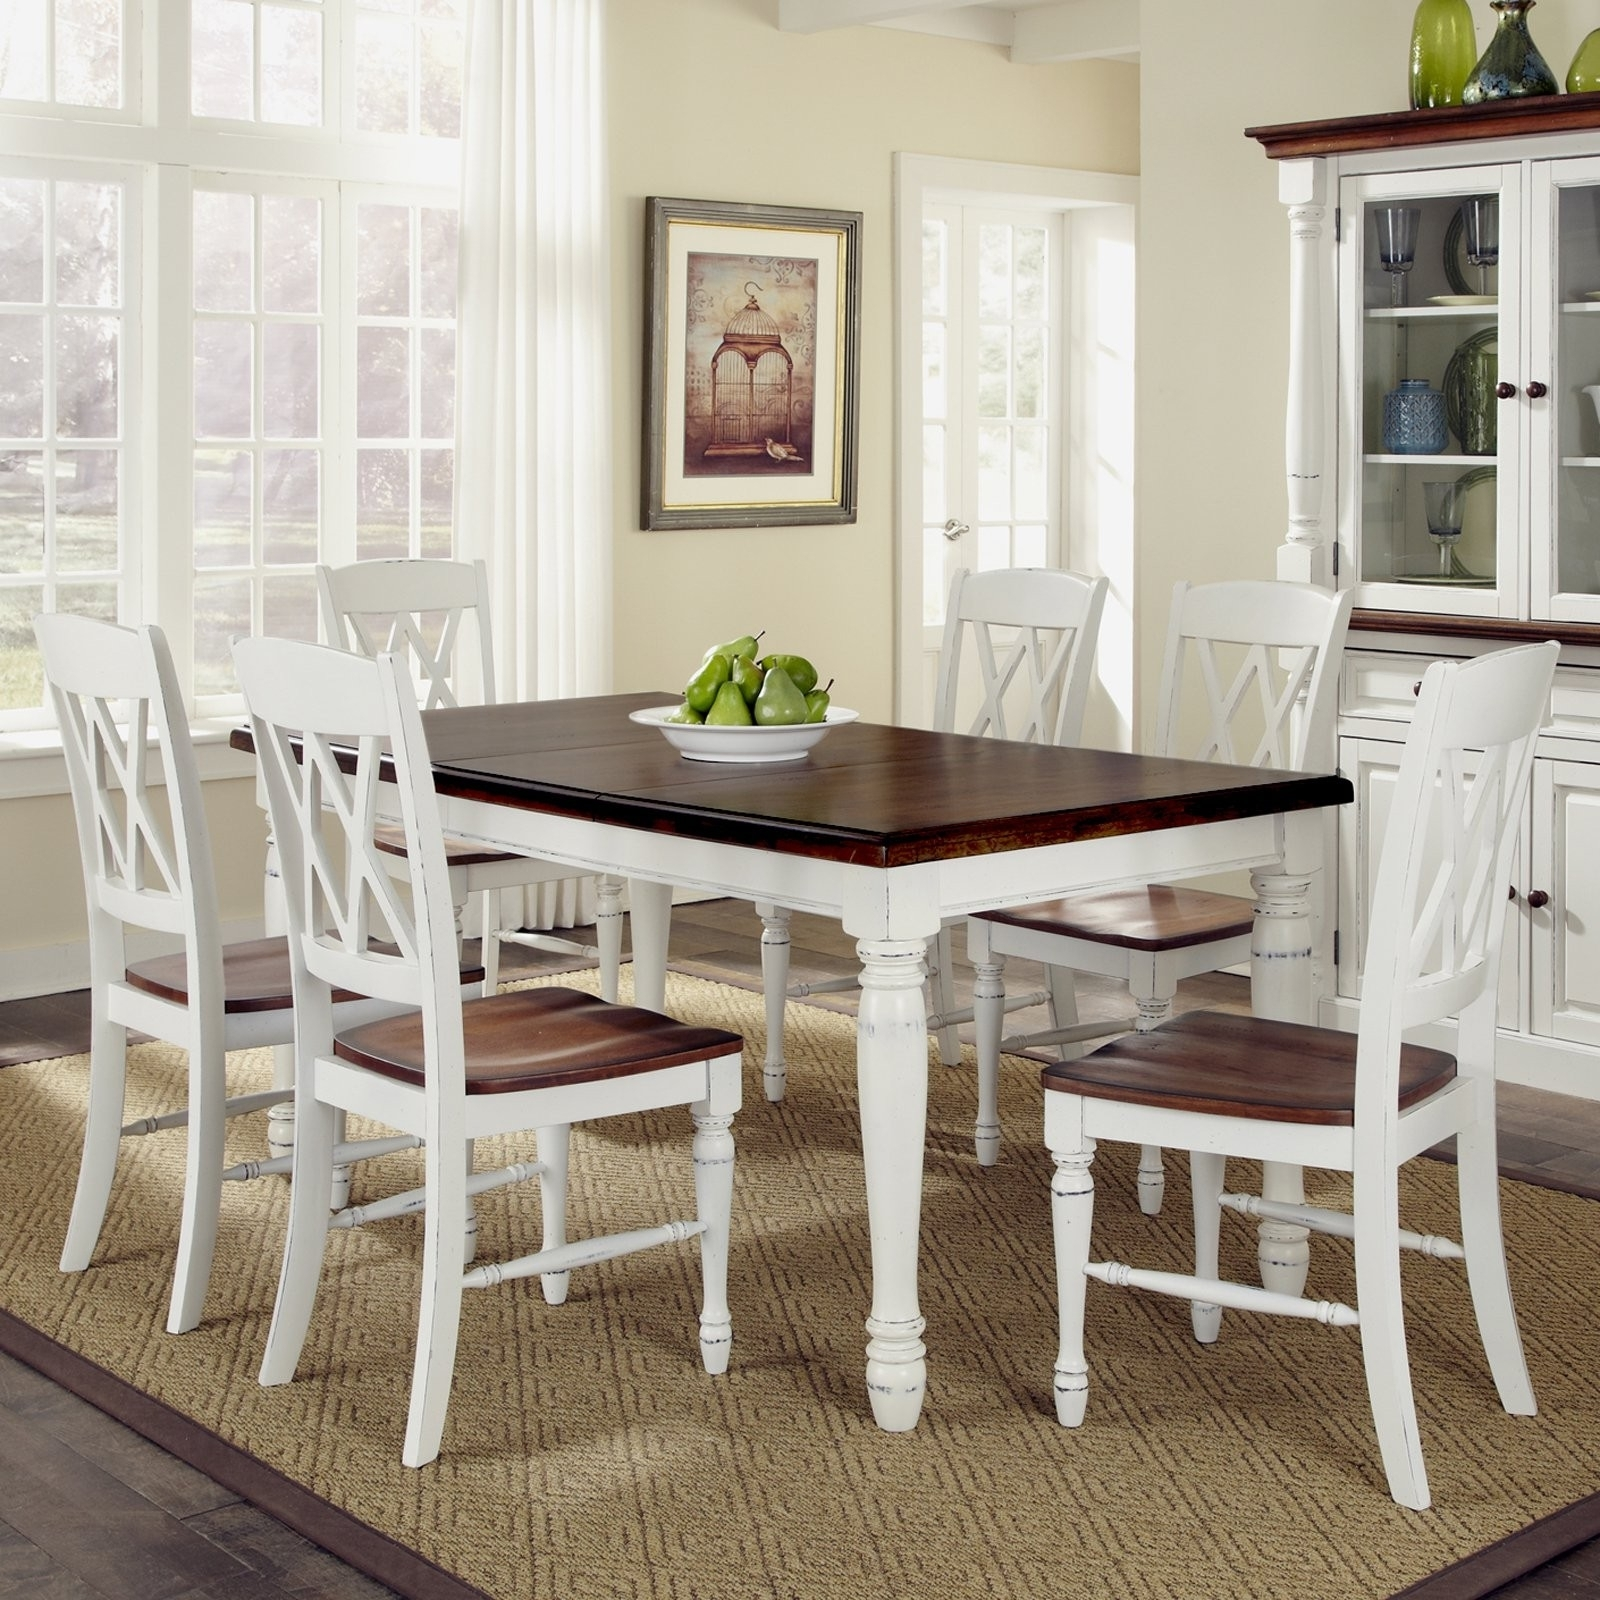 6 Person Round Dining Tables With Well Known 30 Lovely 6 Person Dining Table Size – Welovedandelion (View 22 of 25)